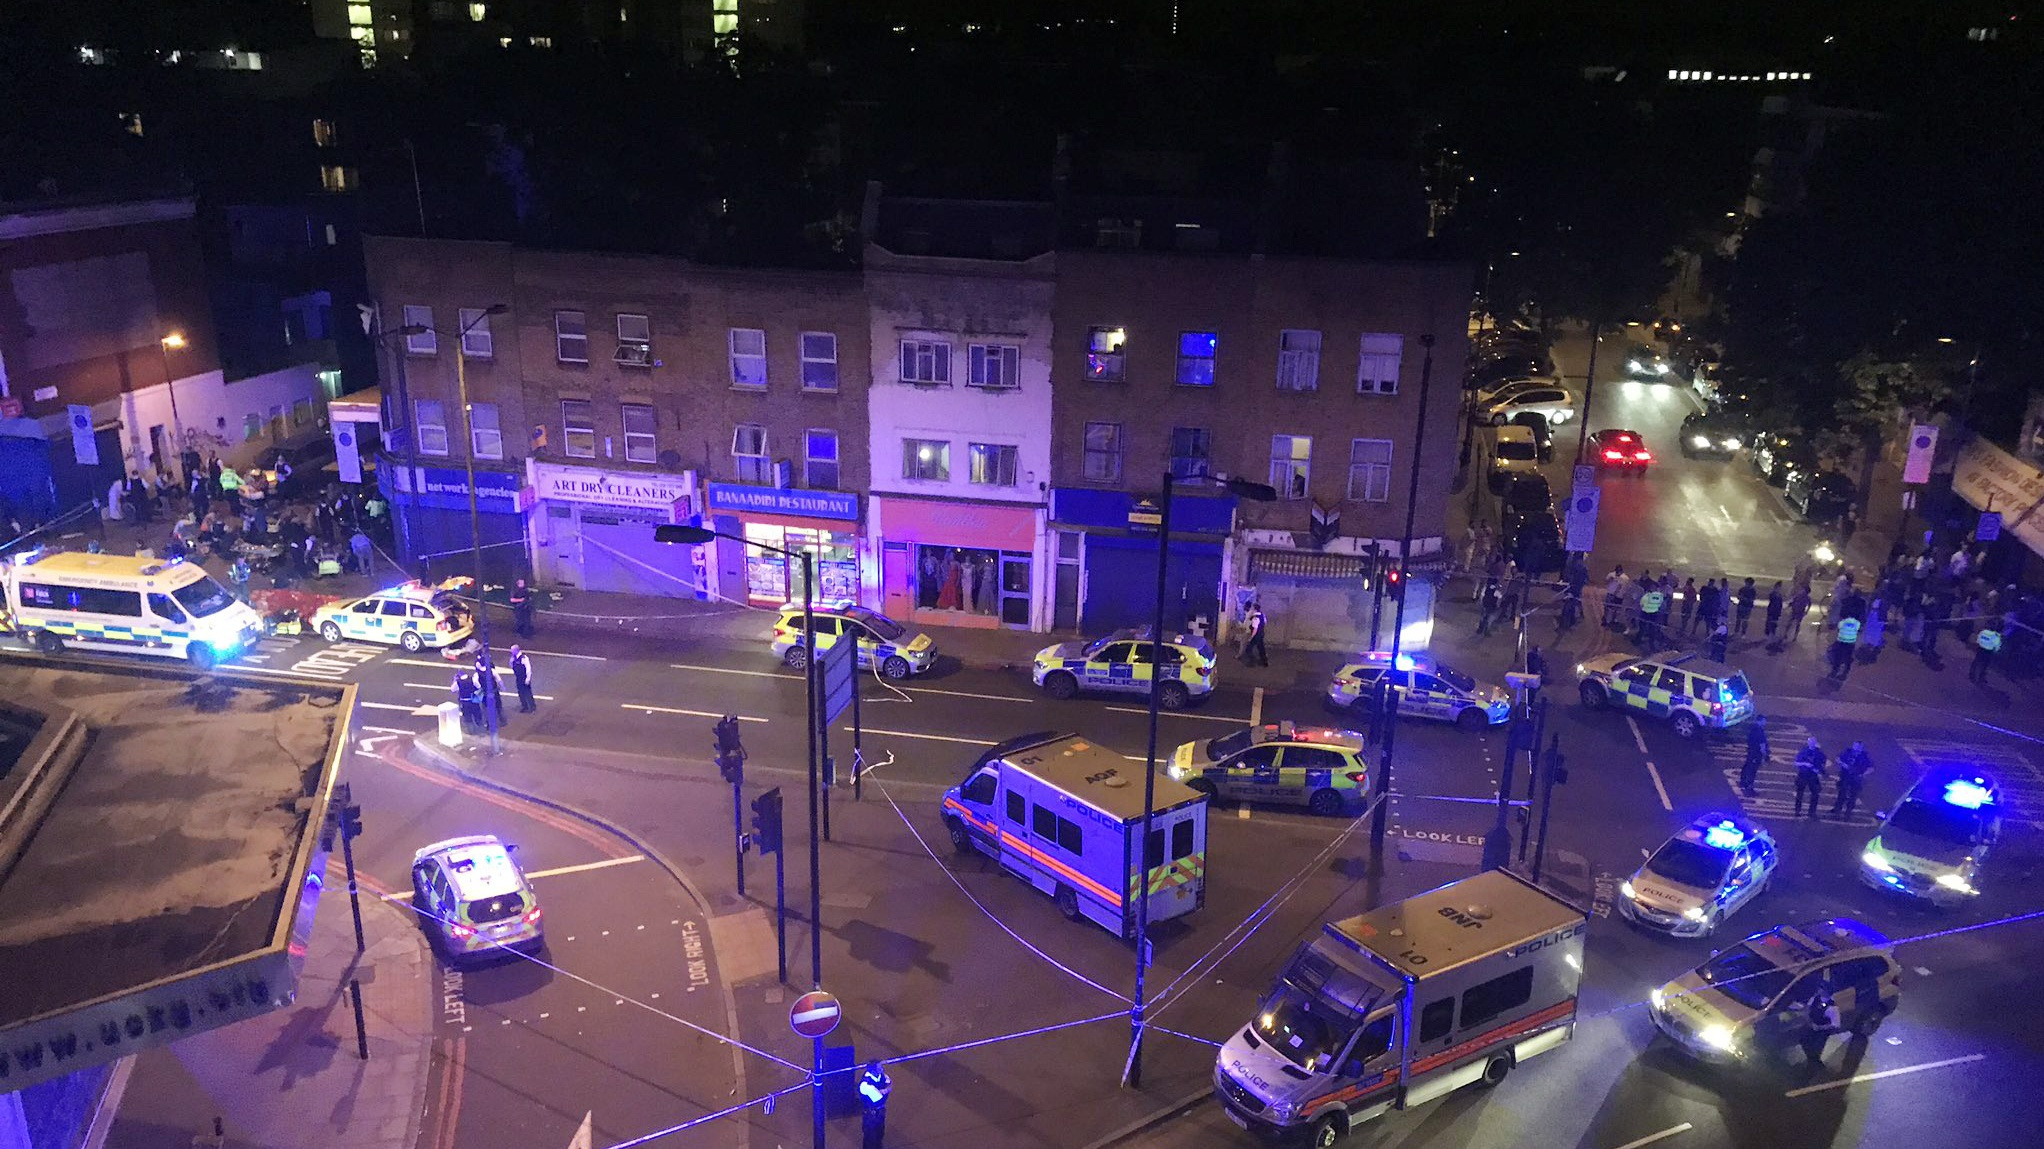 Vehicle strikes pedestrians in north London, several injuries reported